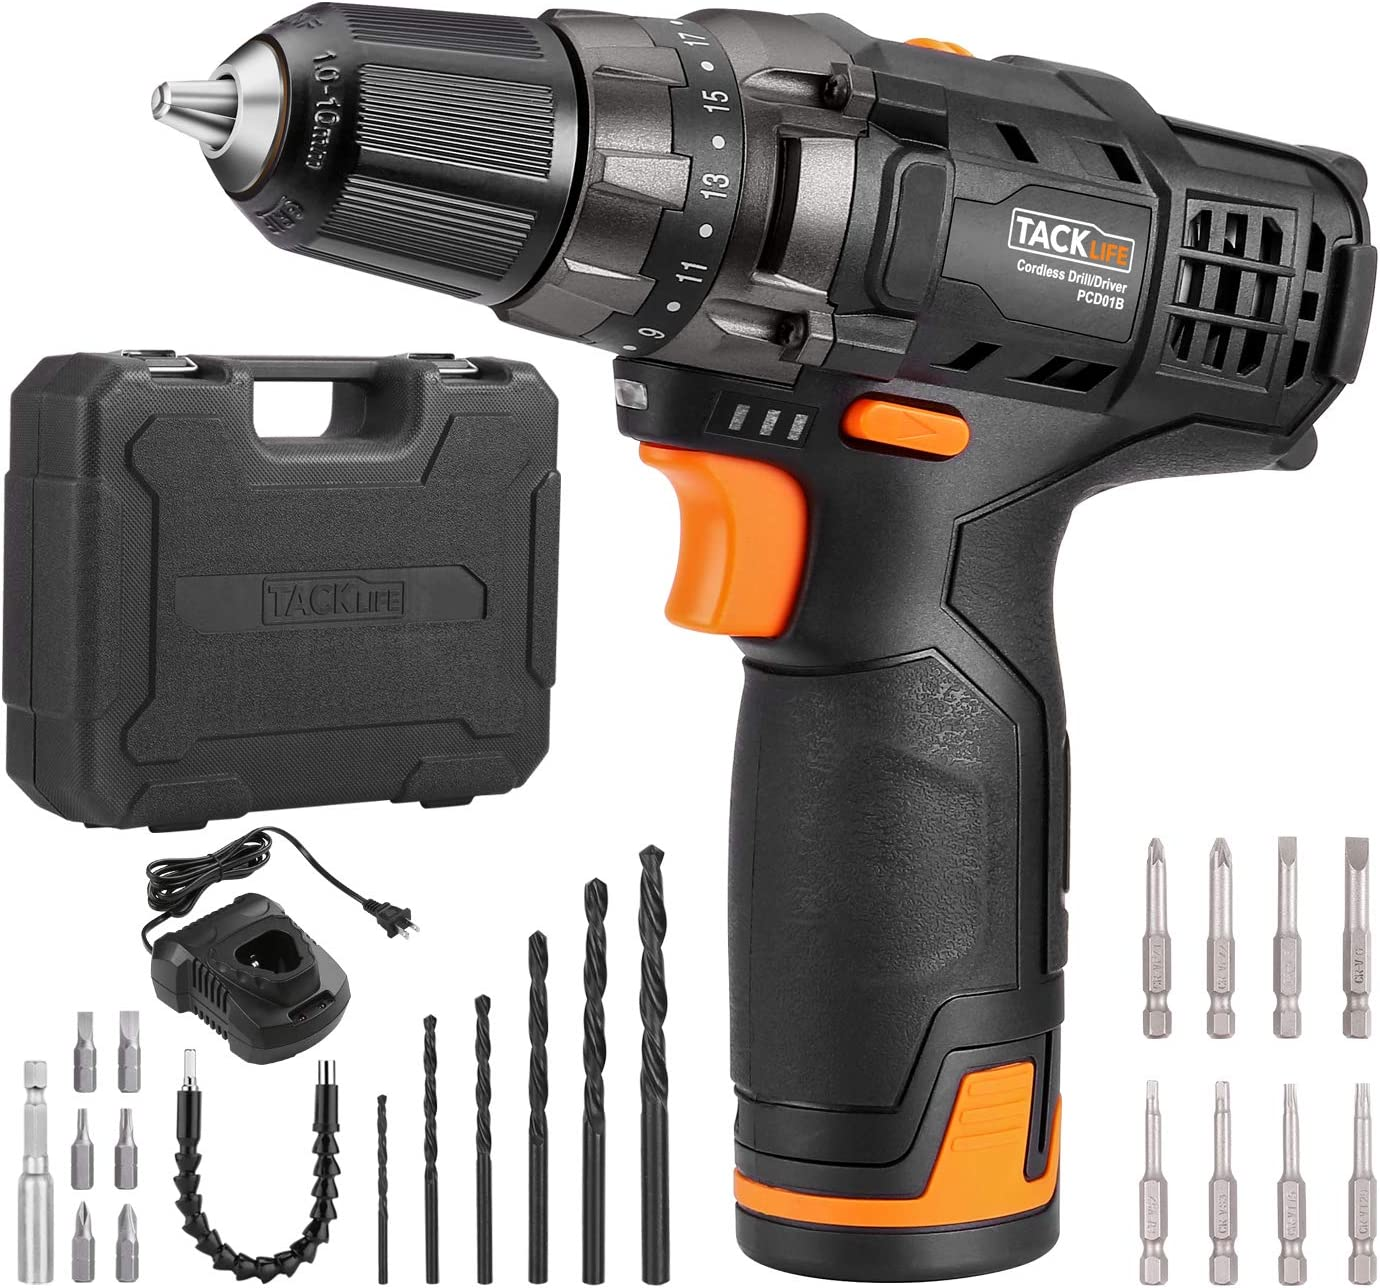 "TACKLIFE 12V Cordless Drill Driver,3/8"" Metal Chuck,2 Speeds Compact Drill Set with 13pcs Accessories,2000mAh Lithium Battery Pack and 1Hour Fast Charger,PCD01B"